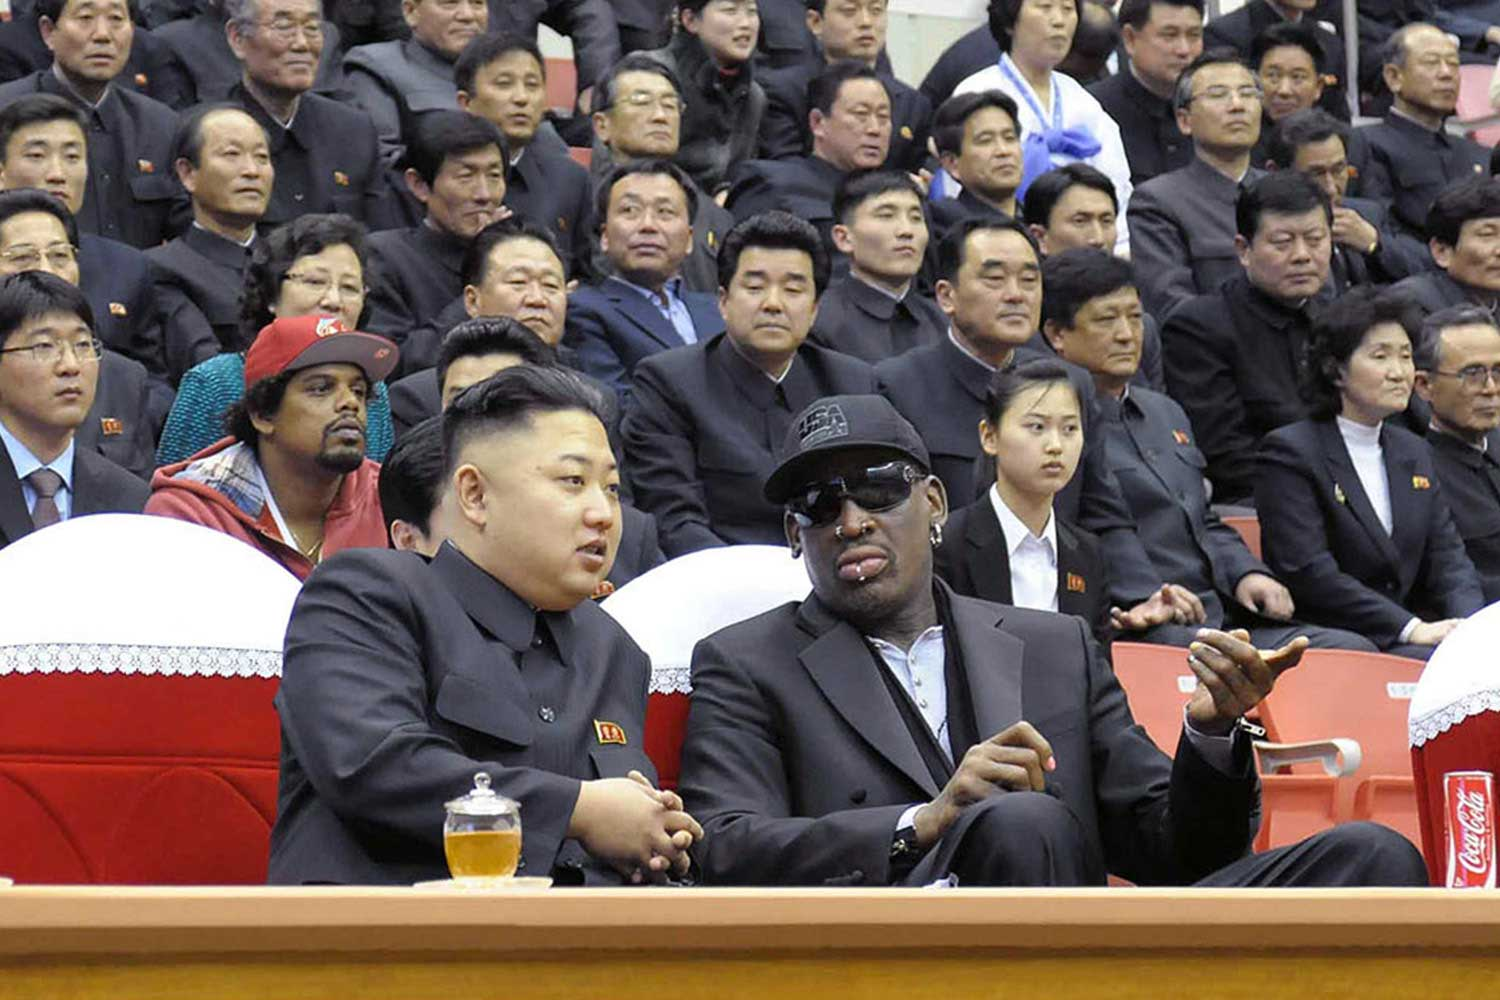 North Korean leader Kim Jong-Un and former NBA star Dennis Rodman speak at a basketball game in Pyongyang on Feb. 28, 2013.